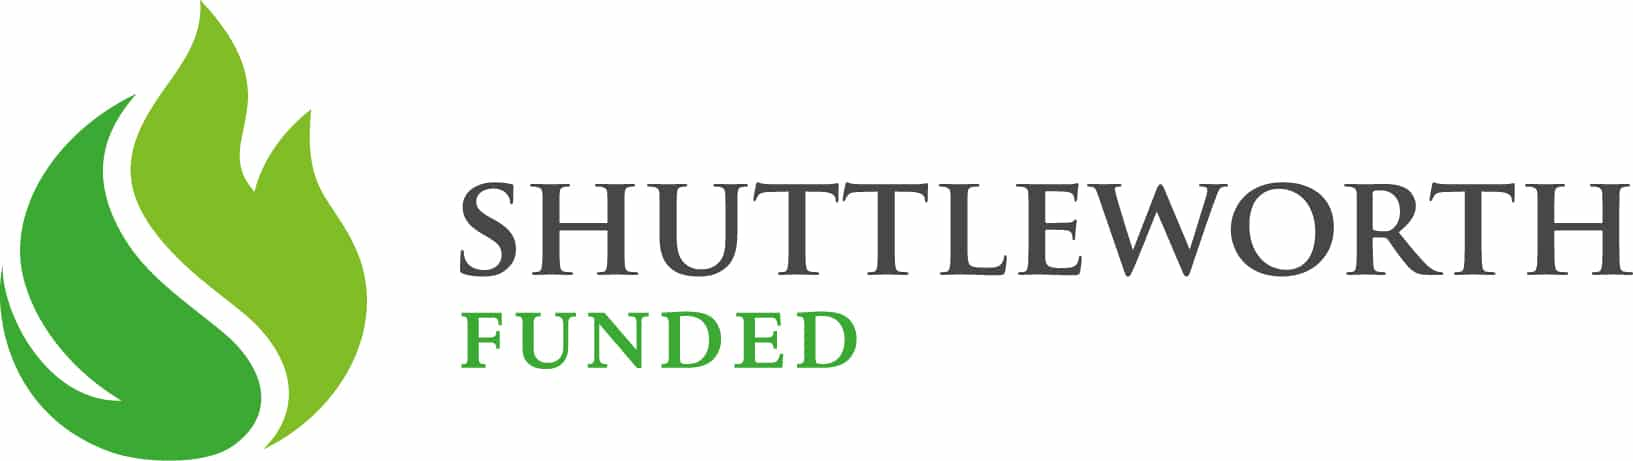 The Shuttleworth Foundation